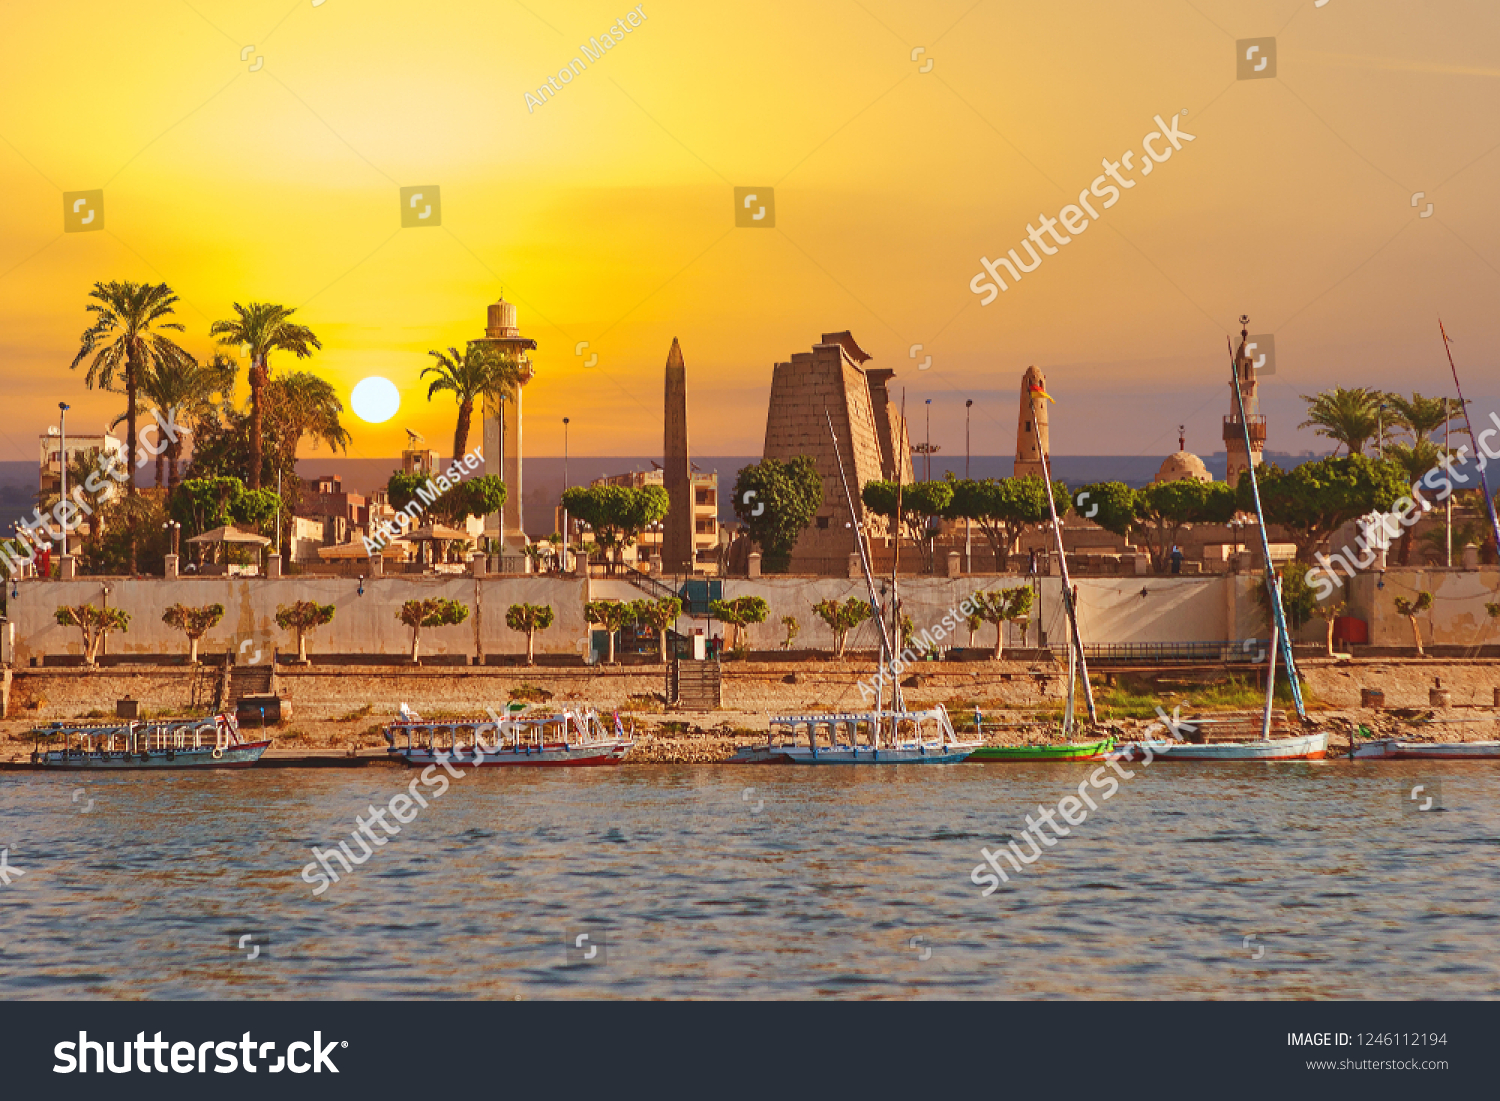 River Nile Luxor Egypt, Beautiful yellow sunny background #1246112194